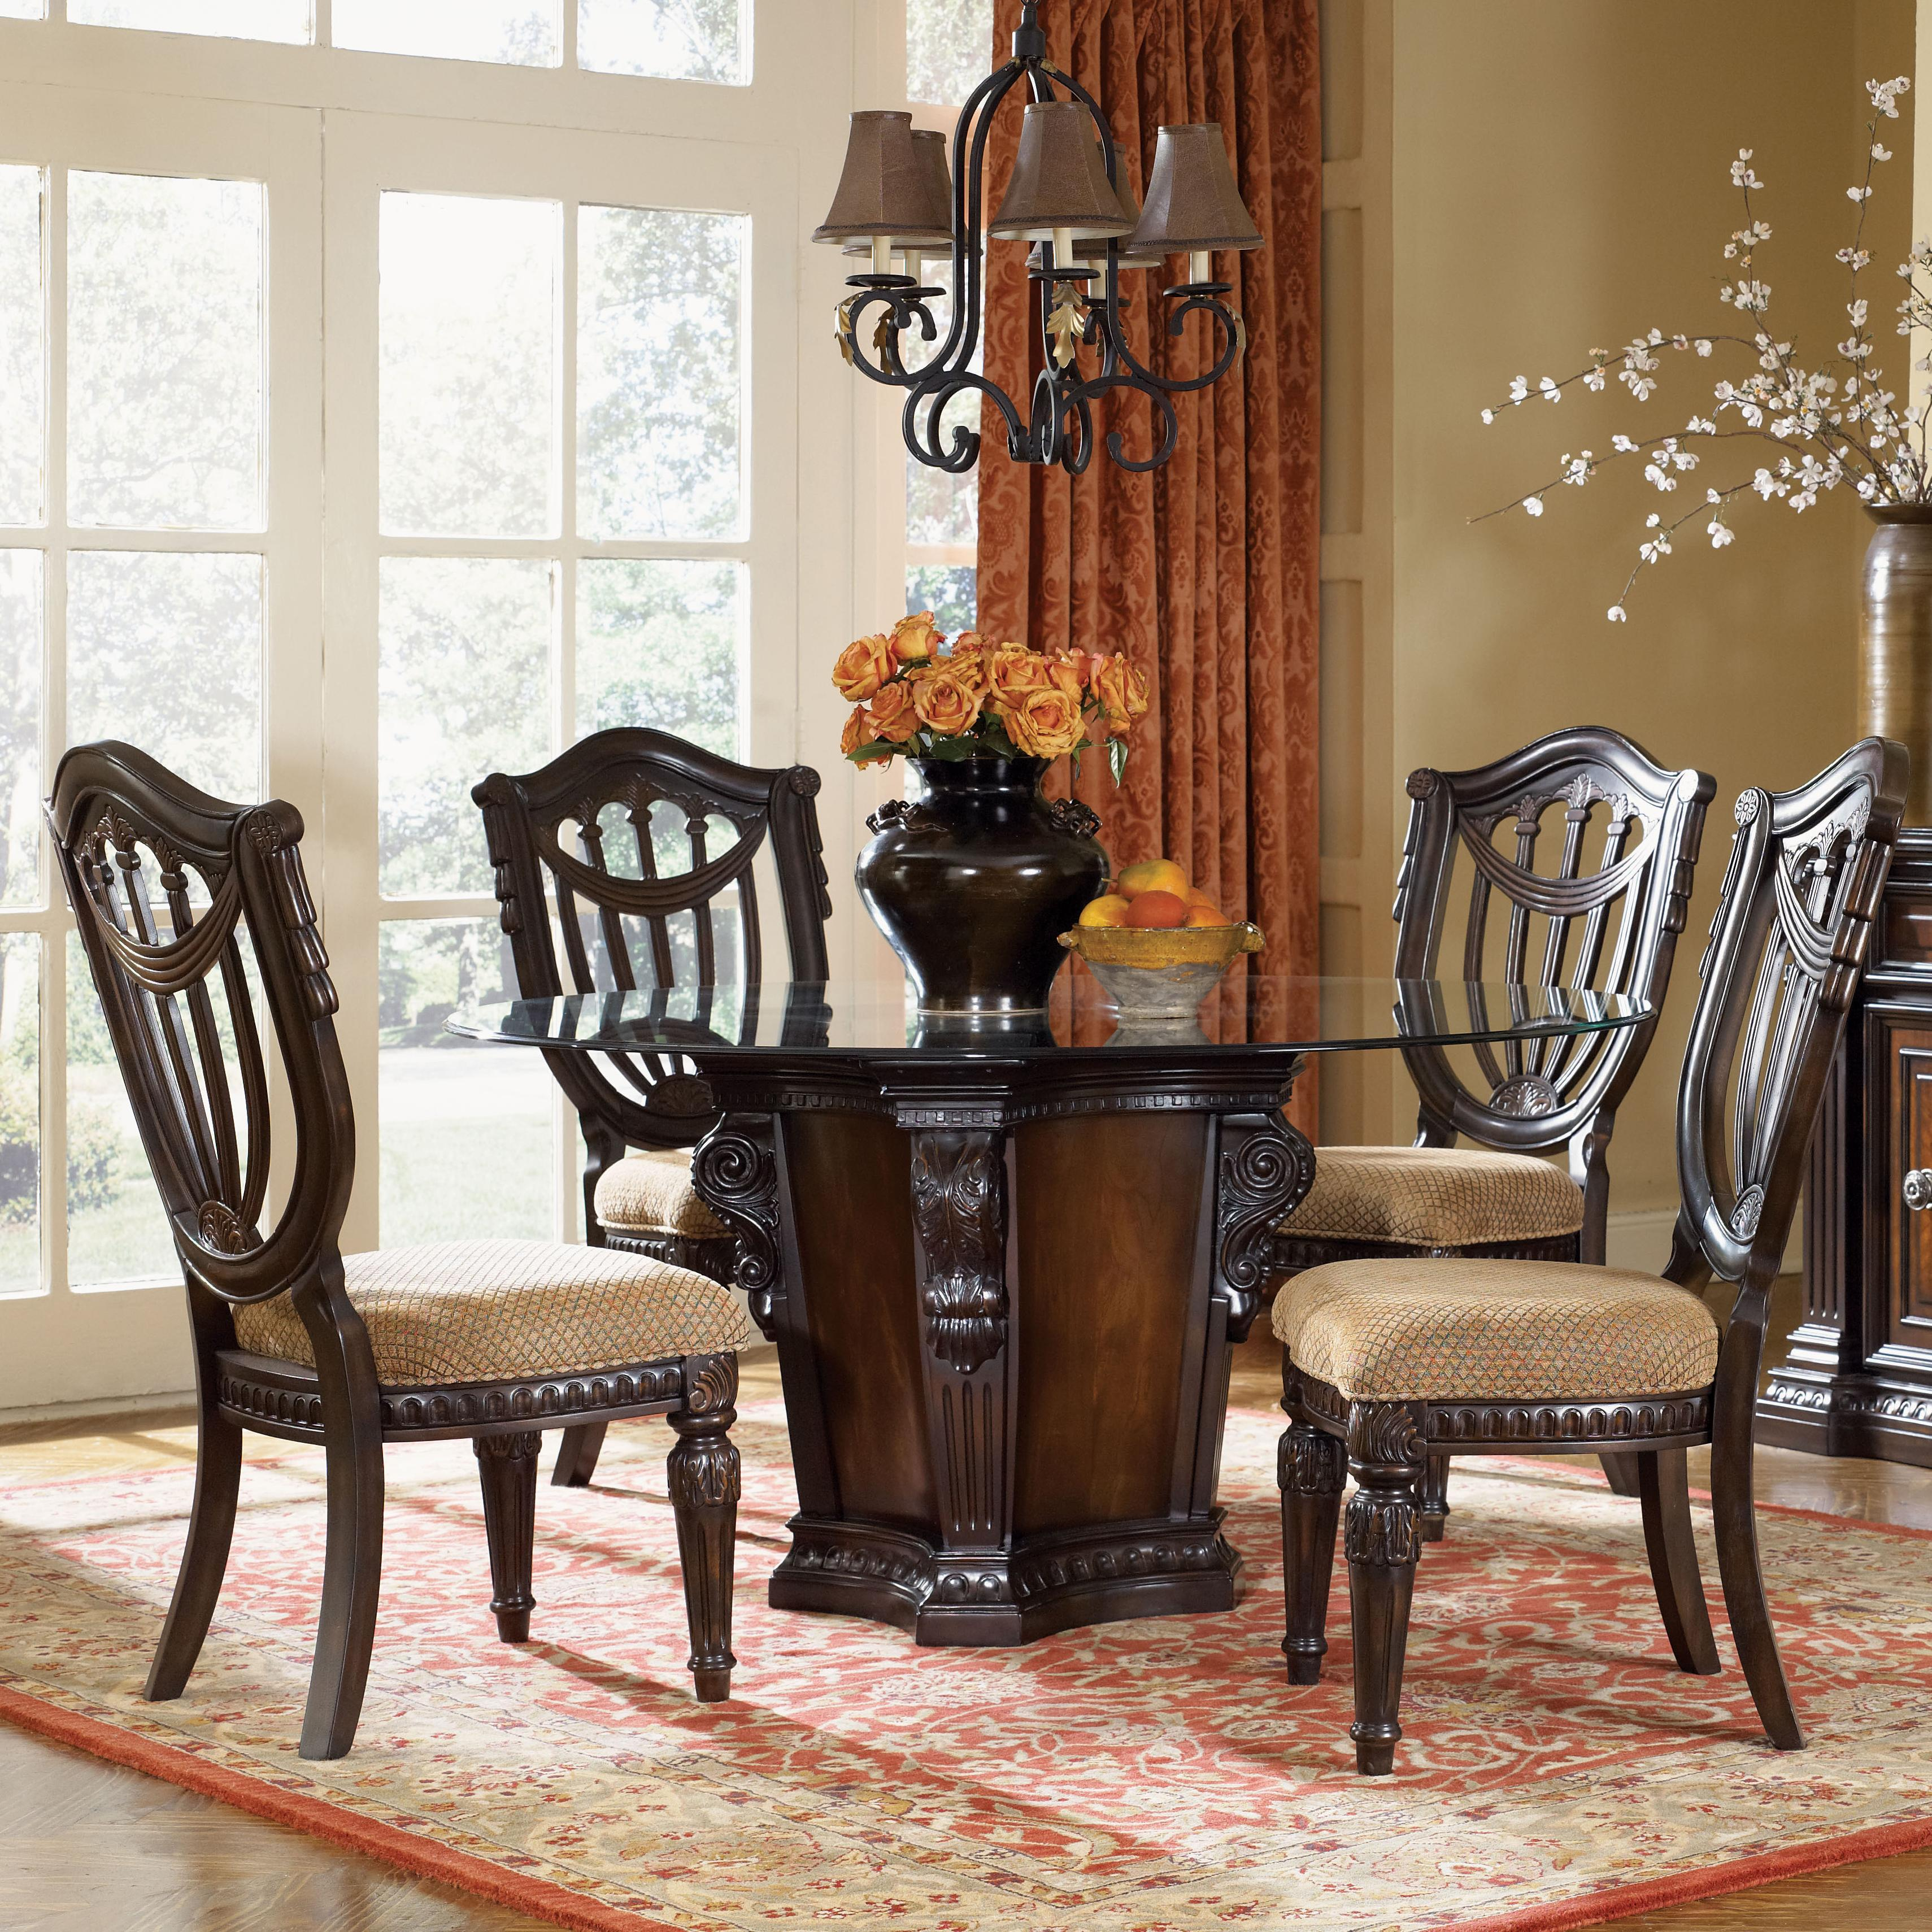 Fairmont Designs Grand Estates 5 Piece Dining Table And Chairs Set Royal Furniture Dining 5